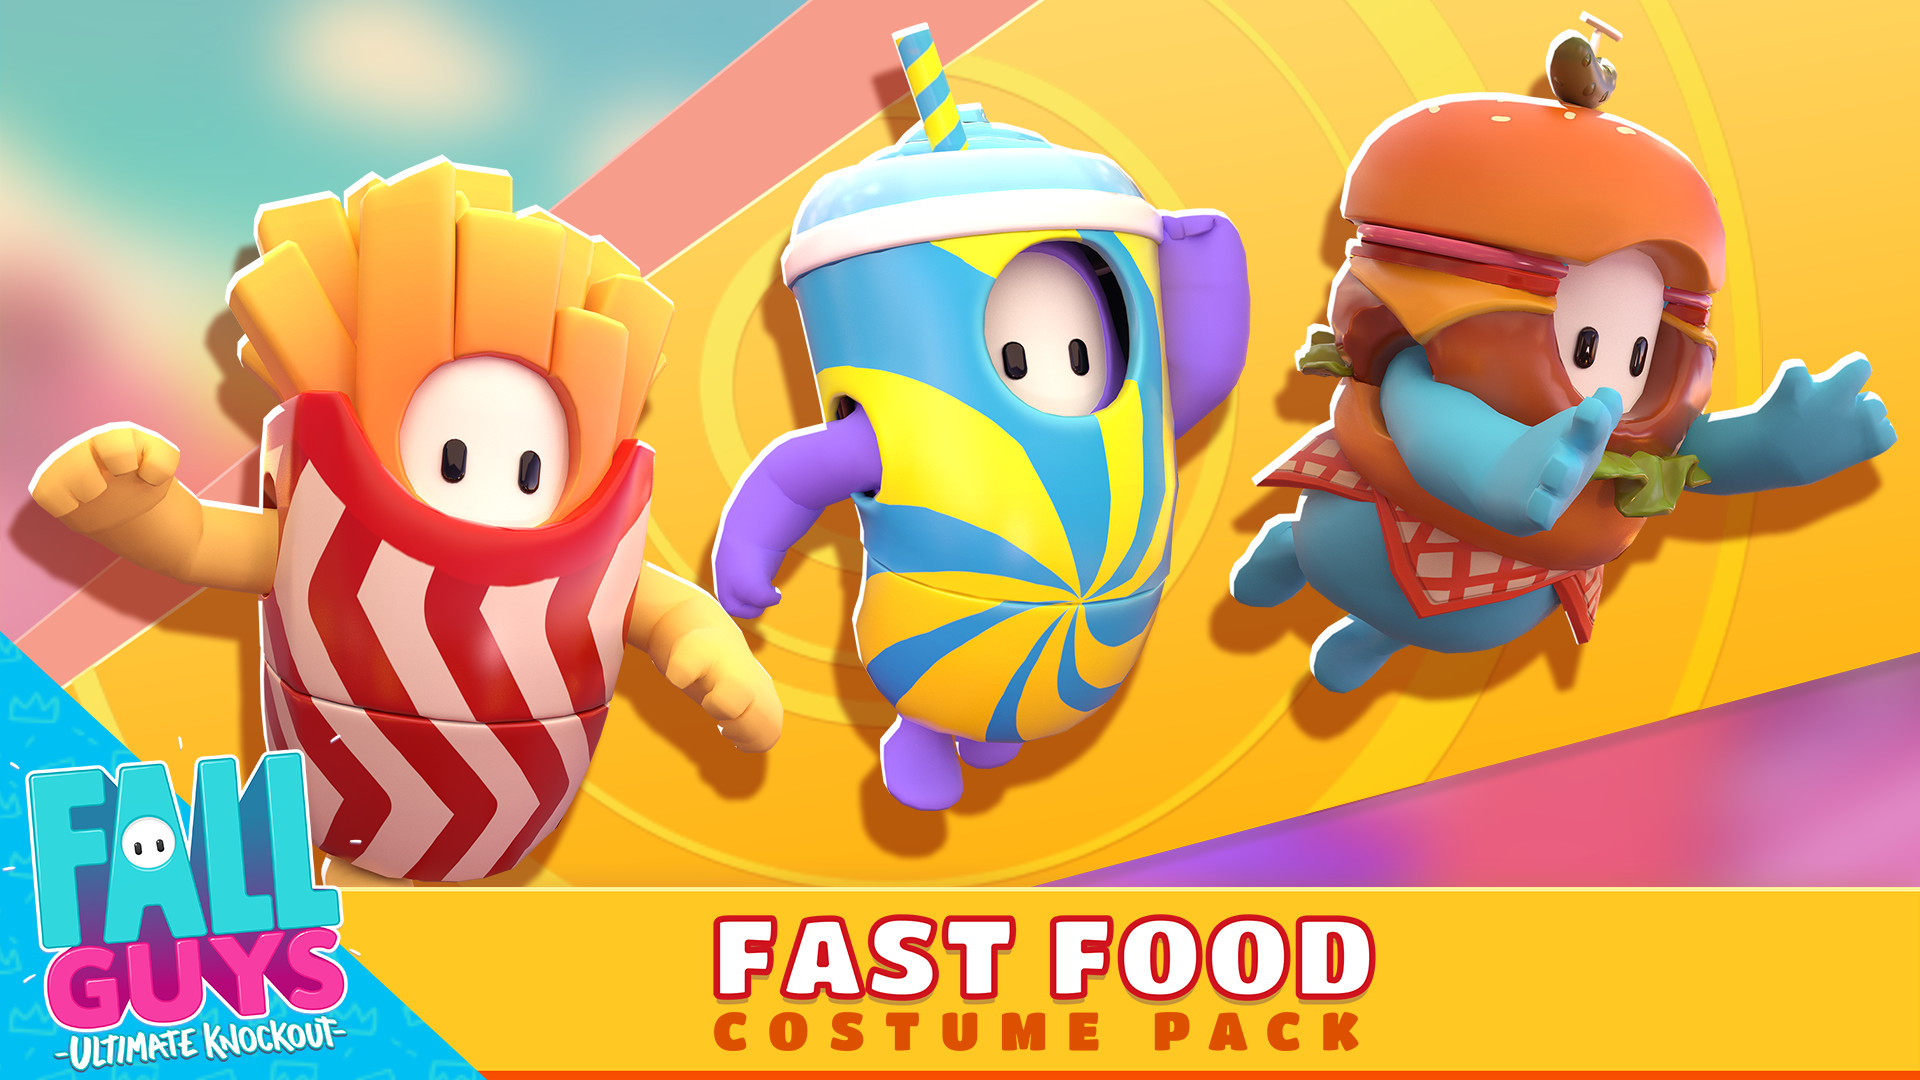 Fall Guys - Fast Food Costume Pack en Steam